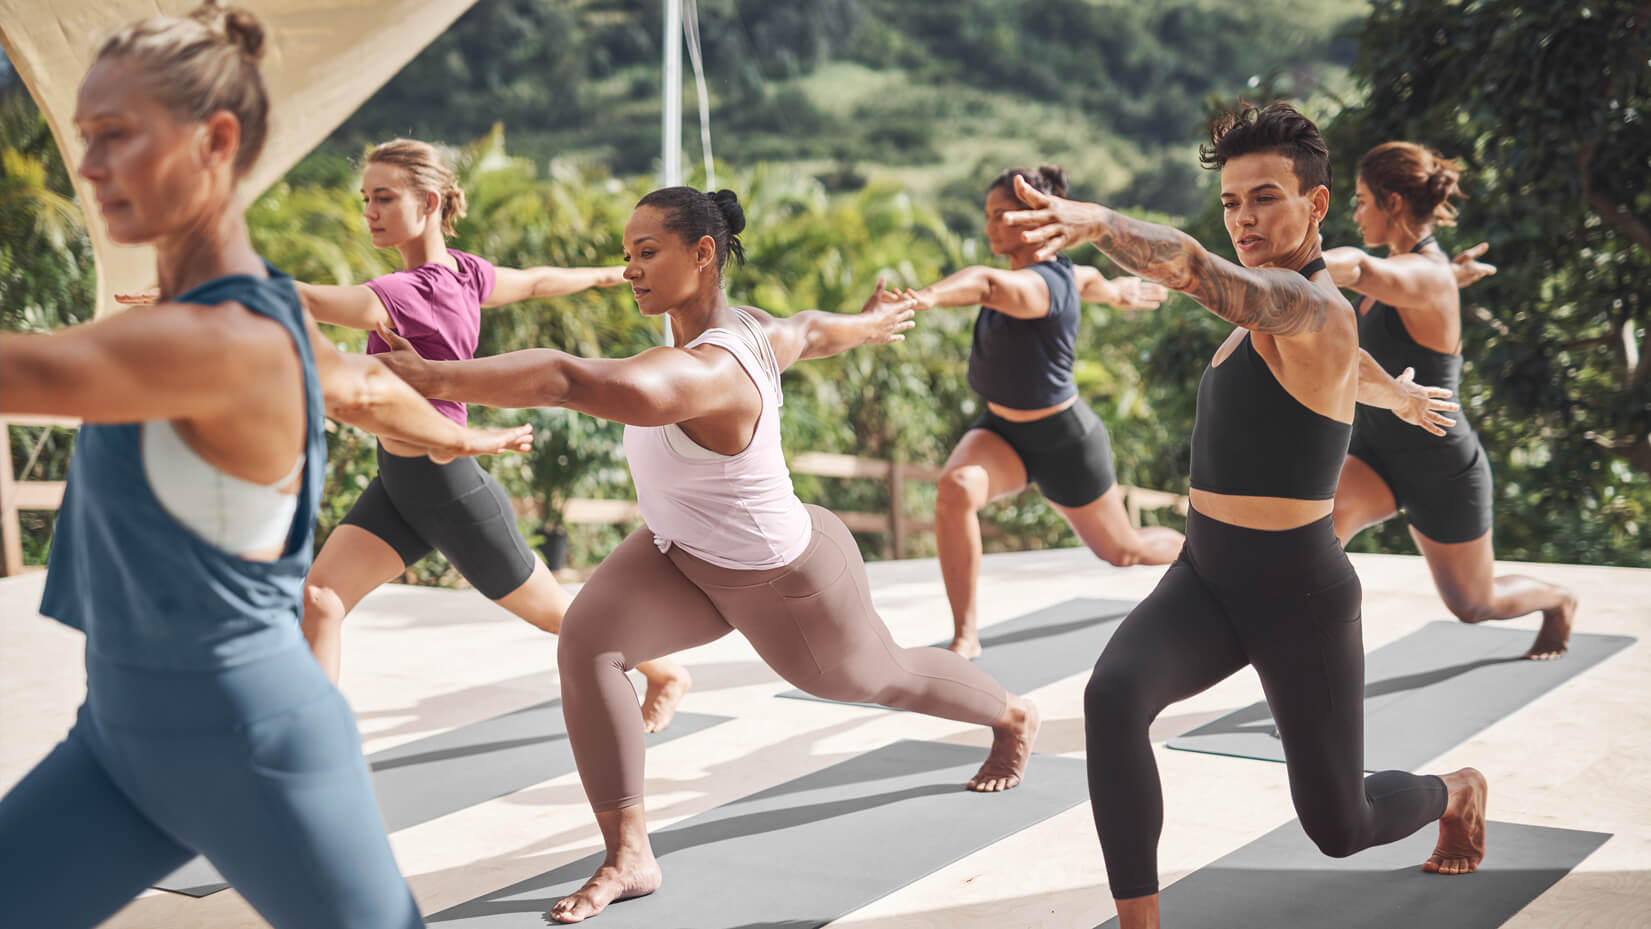 If Gap Spins Off Athleta, It Would Be a Big Mistake